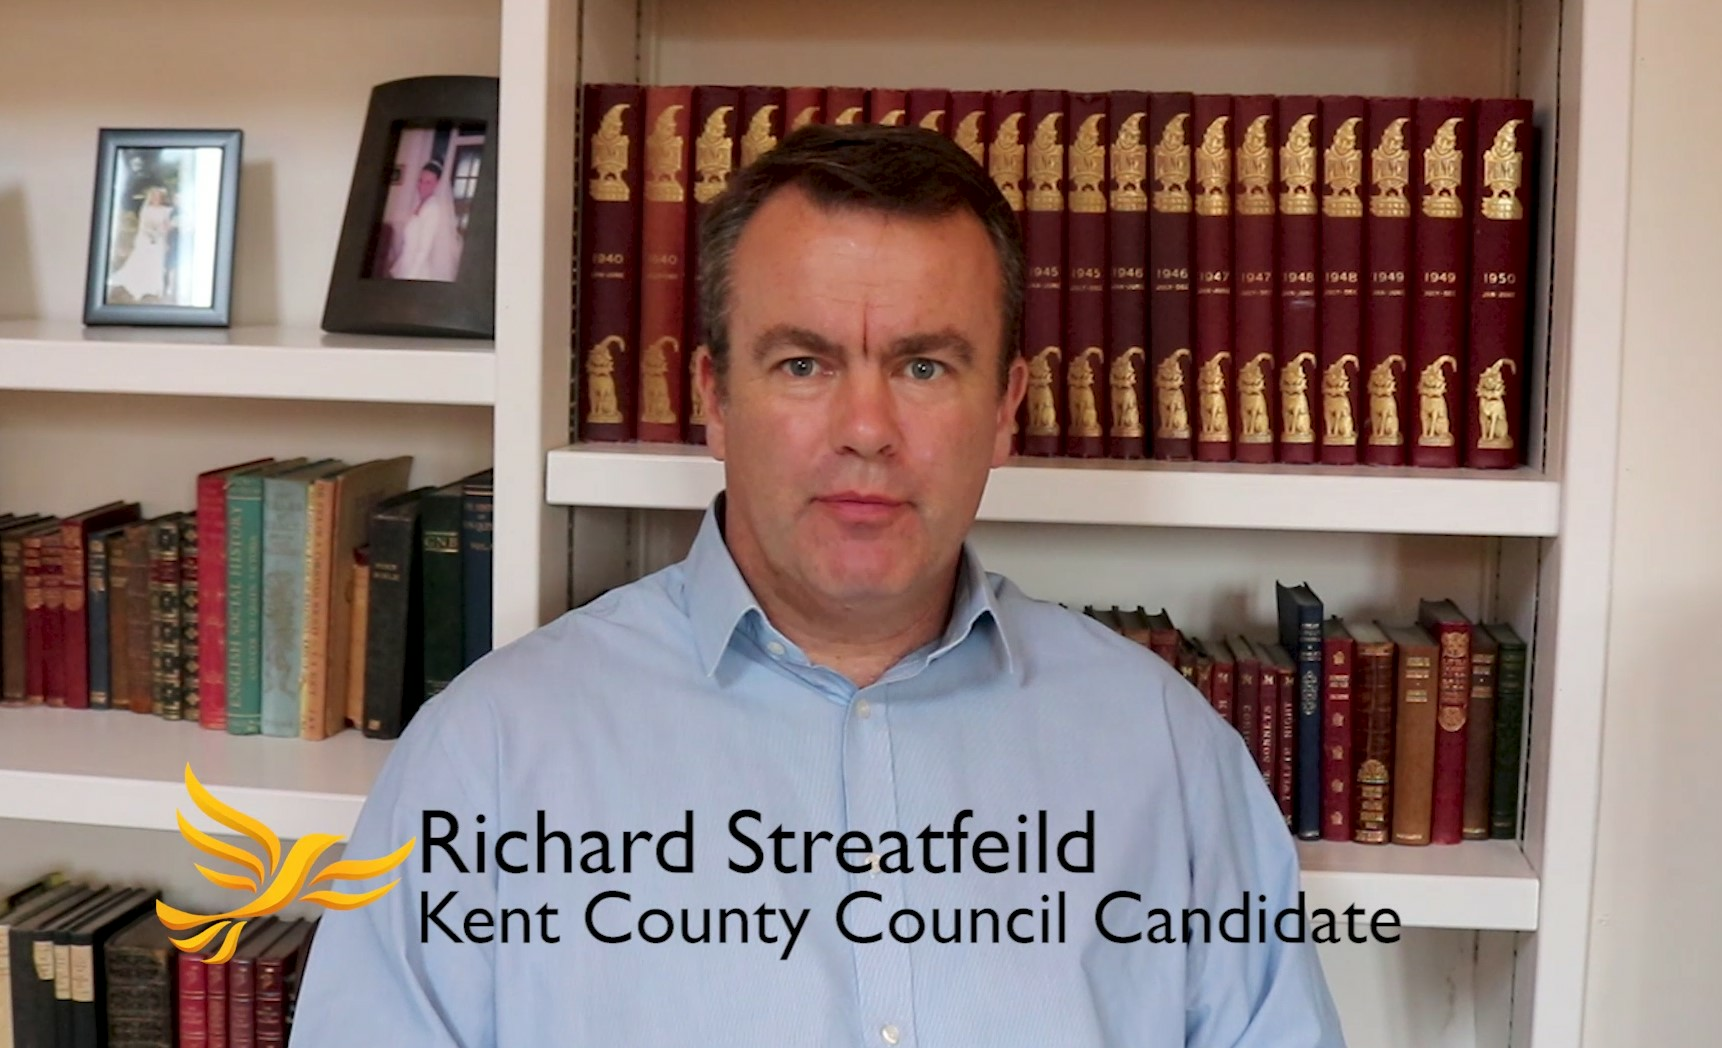 Richard Streatfeild's introductory video still